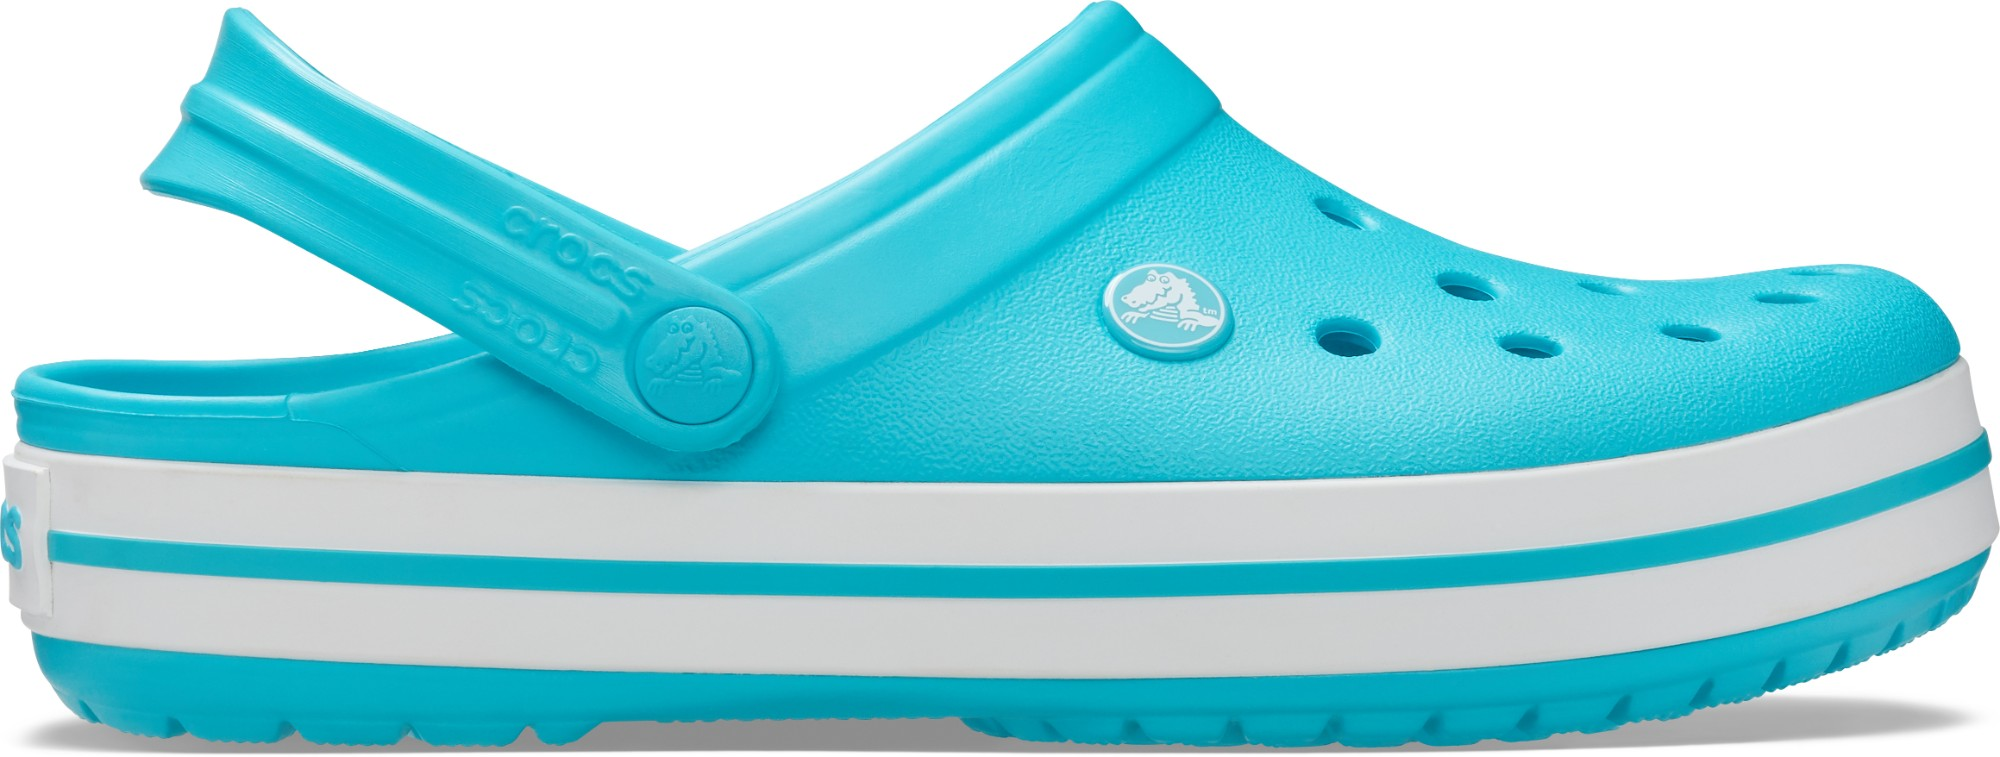 Crocs™ Crocband™ Digital Aqua 38,5